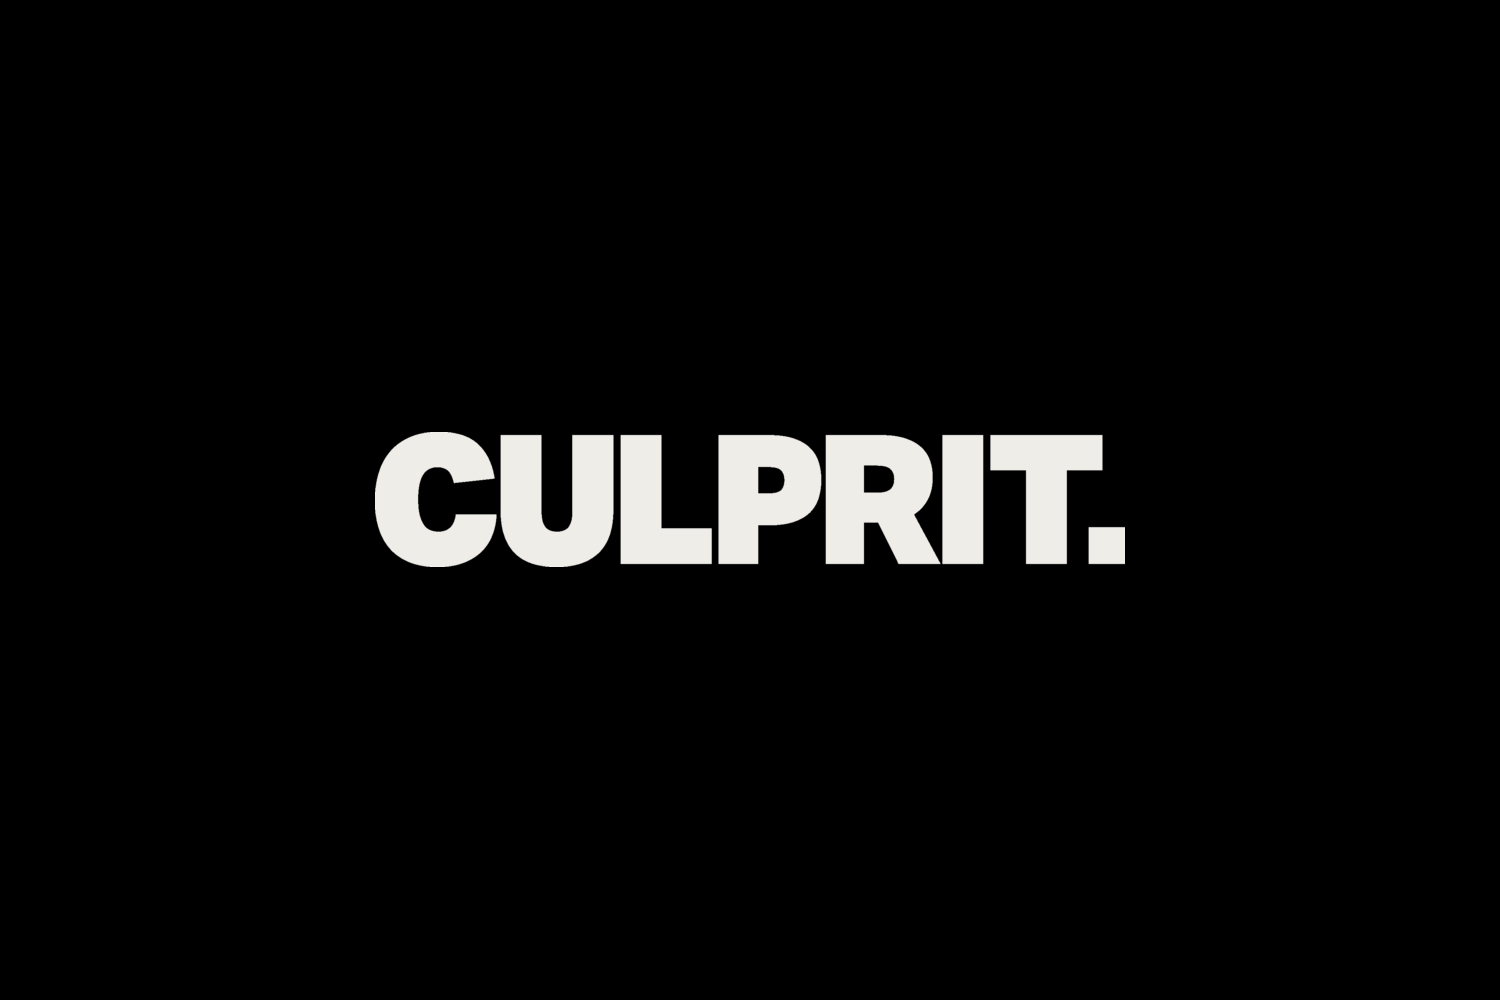 Logotype by Studio South for Auckland bar and restaurant Culprit